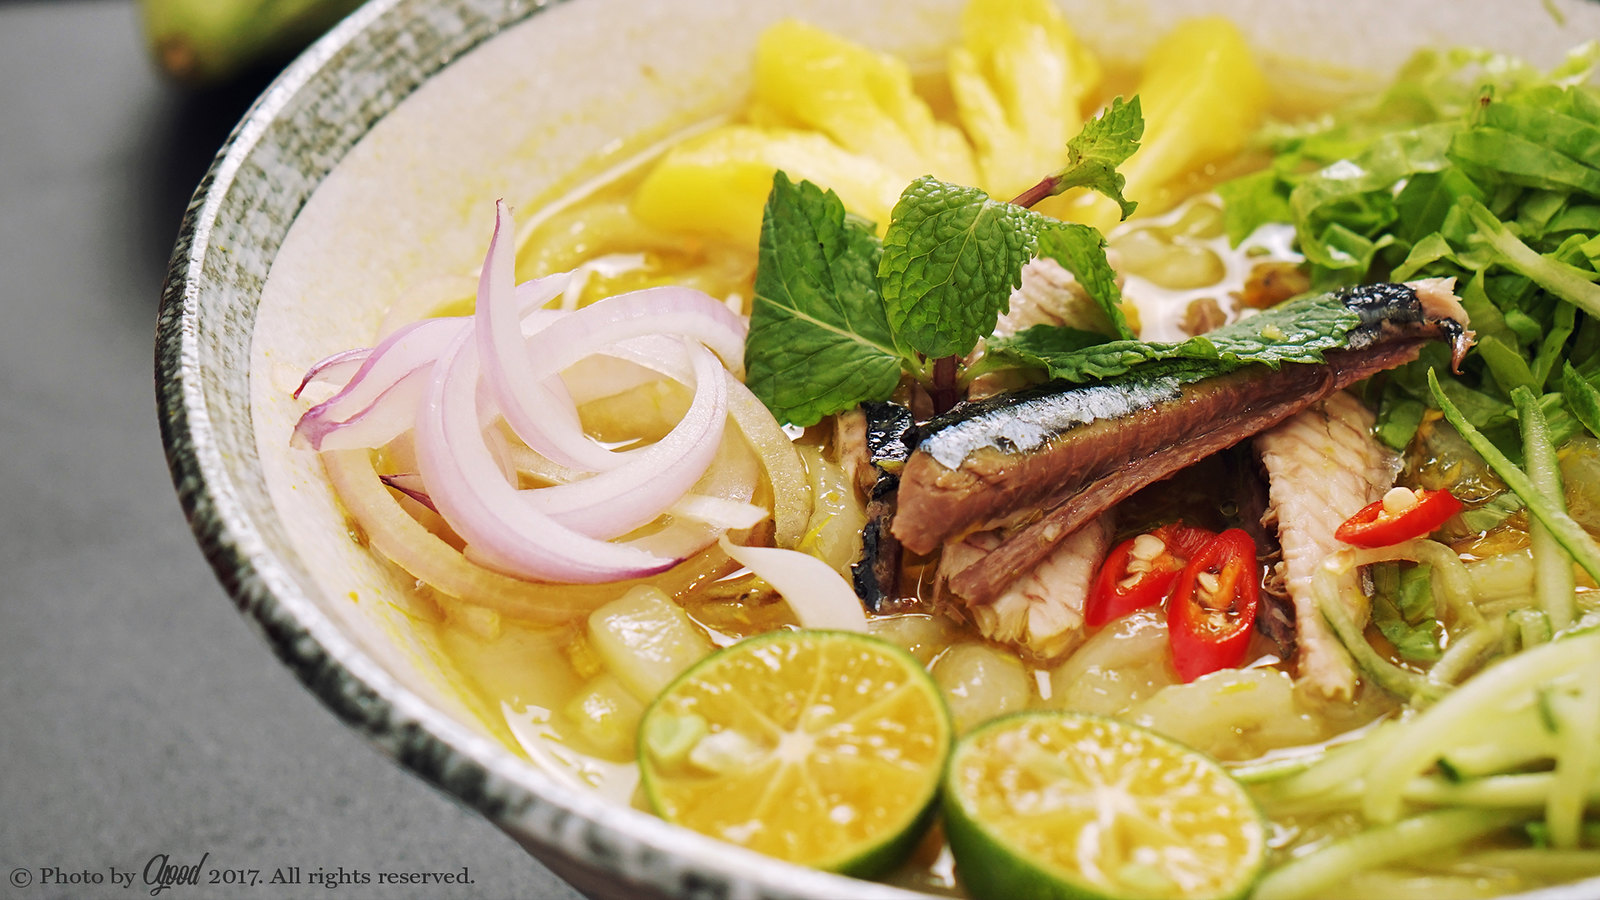 Assam Laksa – Malaysian sour and spicy fish soup noodles